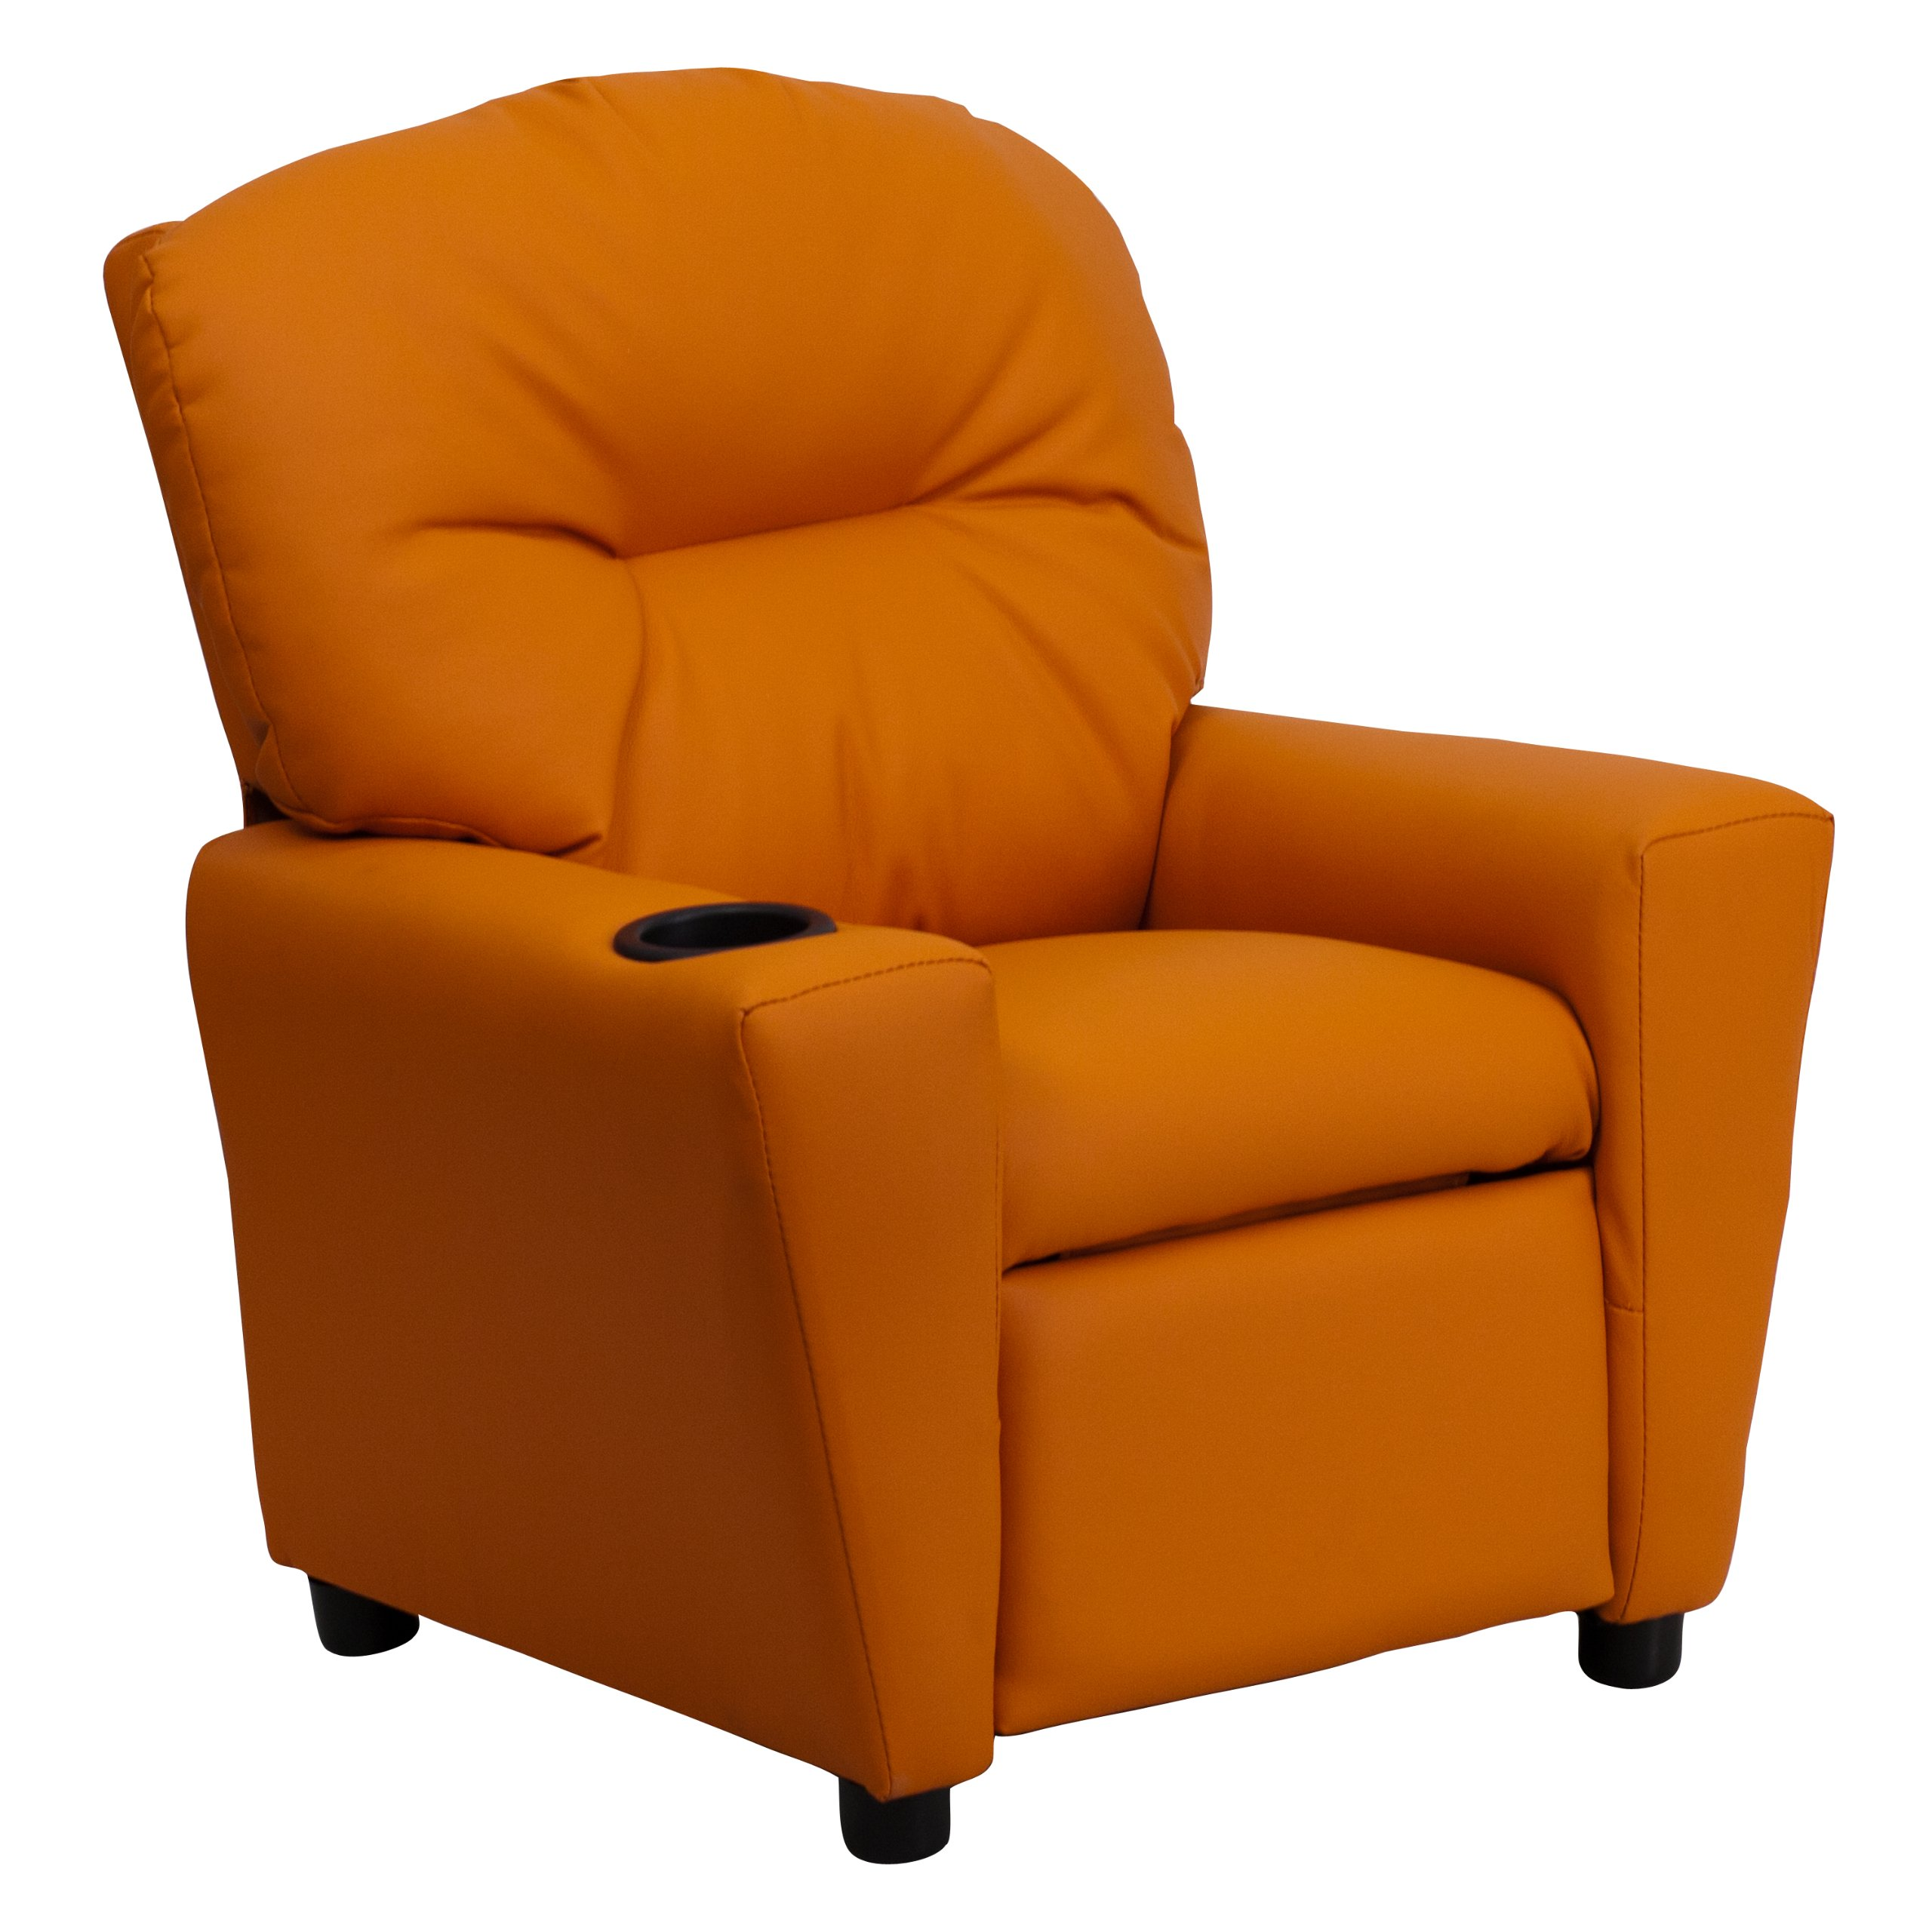 Winston Direct Kids' Series Contemporary Orange Vinyl Recliner with Cup Holder